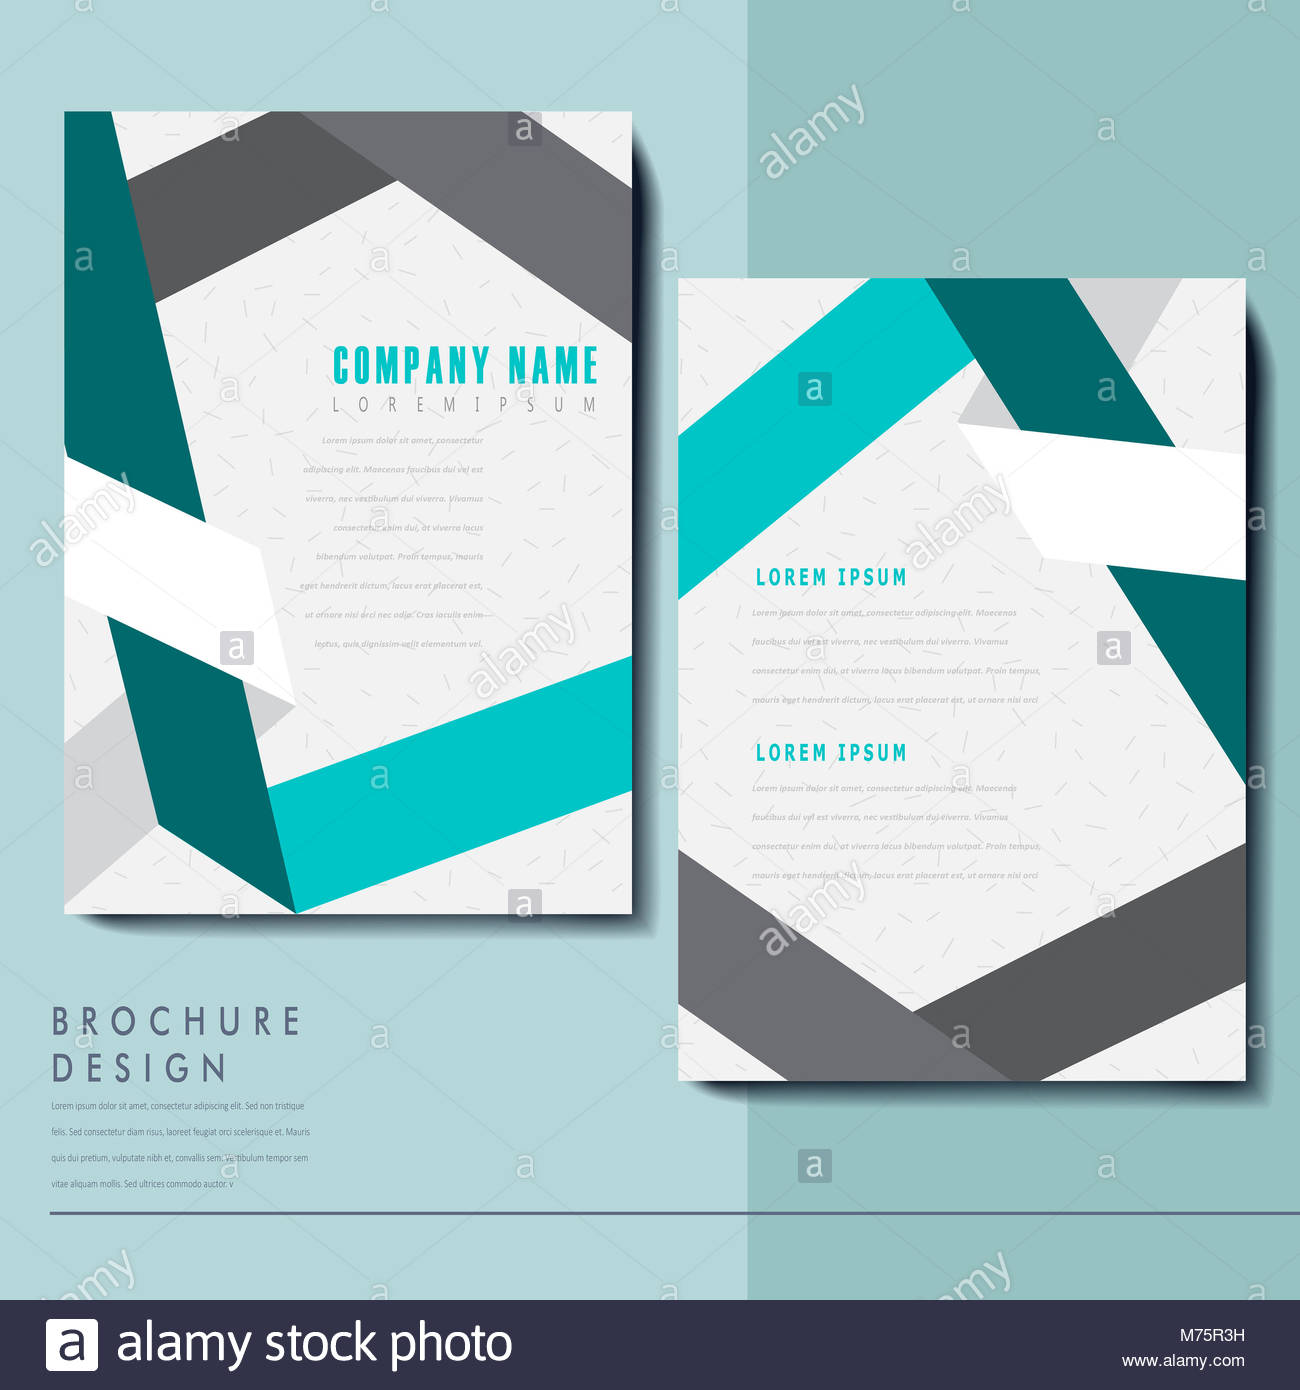 Elegant Brochure Template Design With Paper Folded Elements Stock